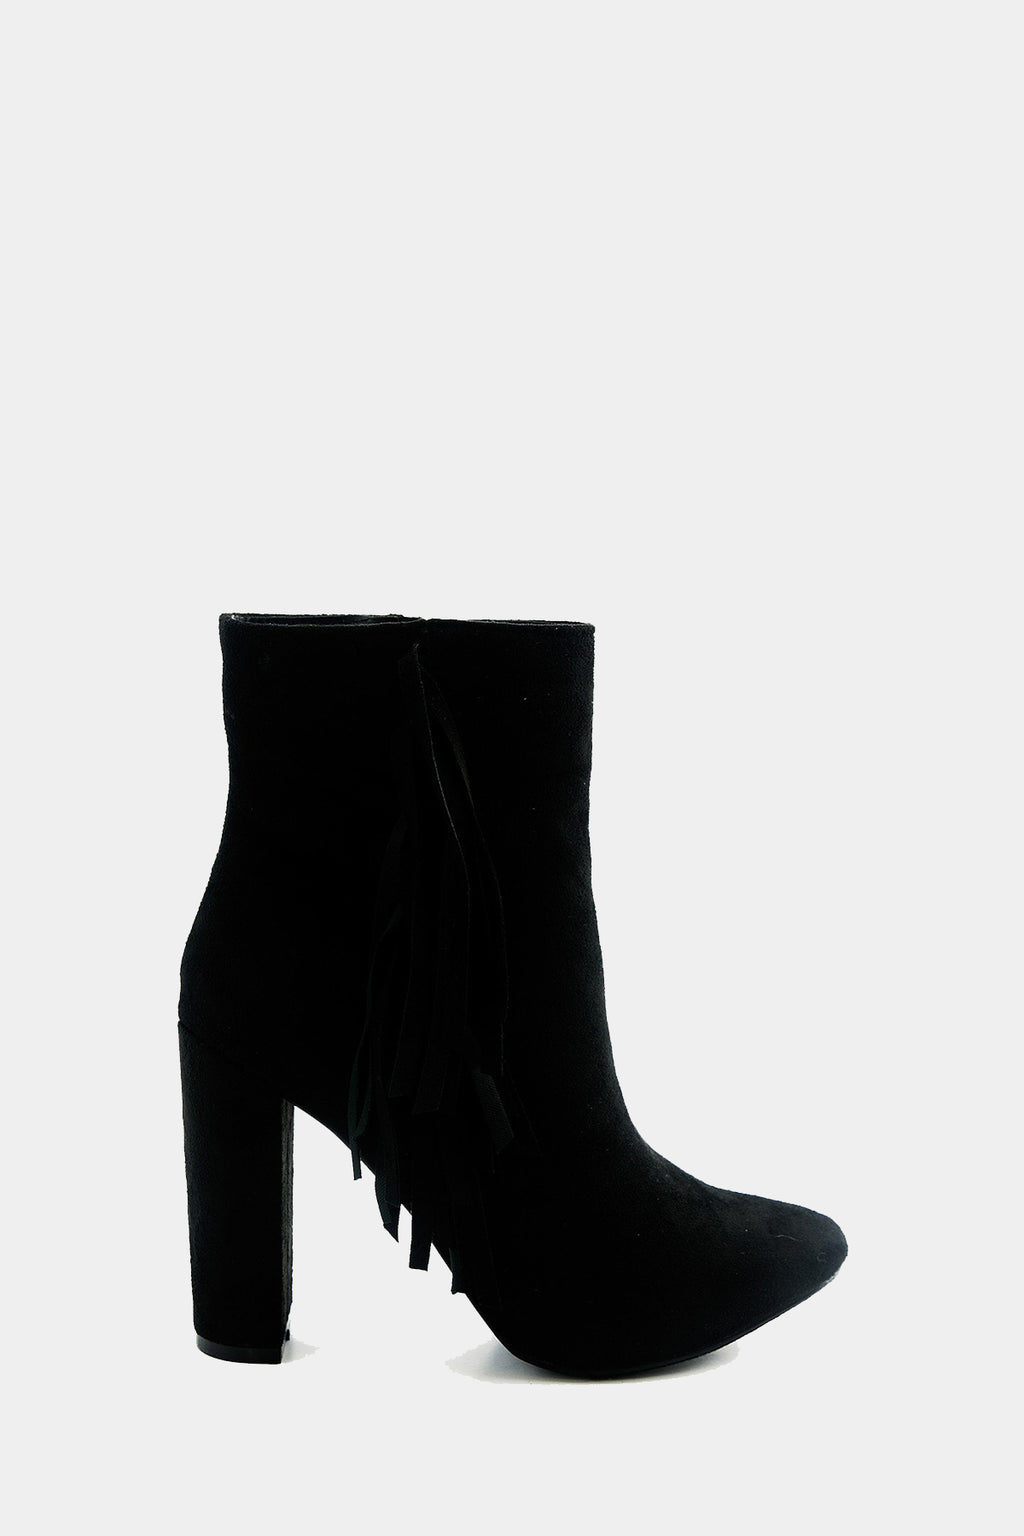 Suede Fringe Ankle Boot - Black